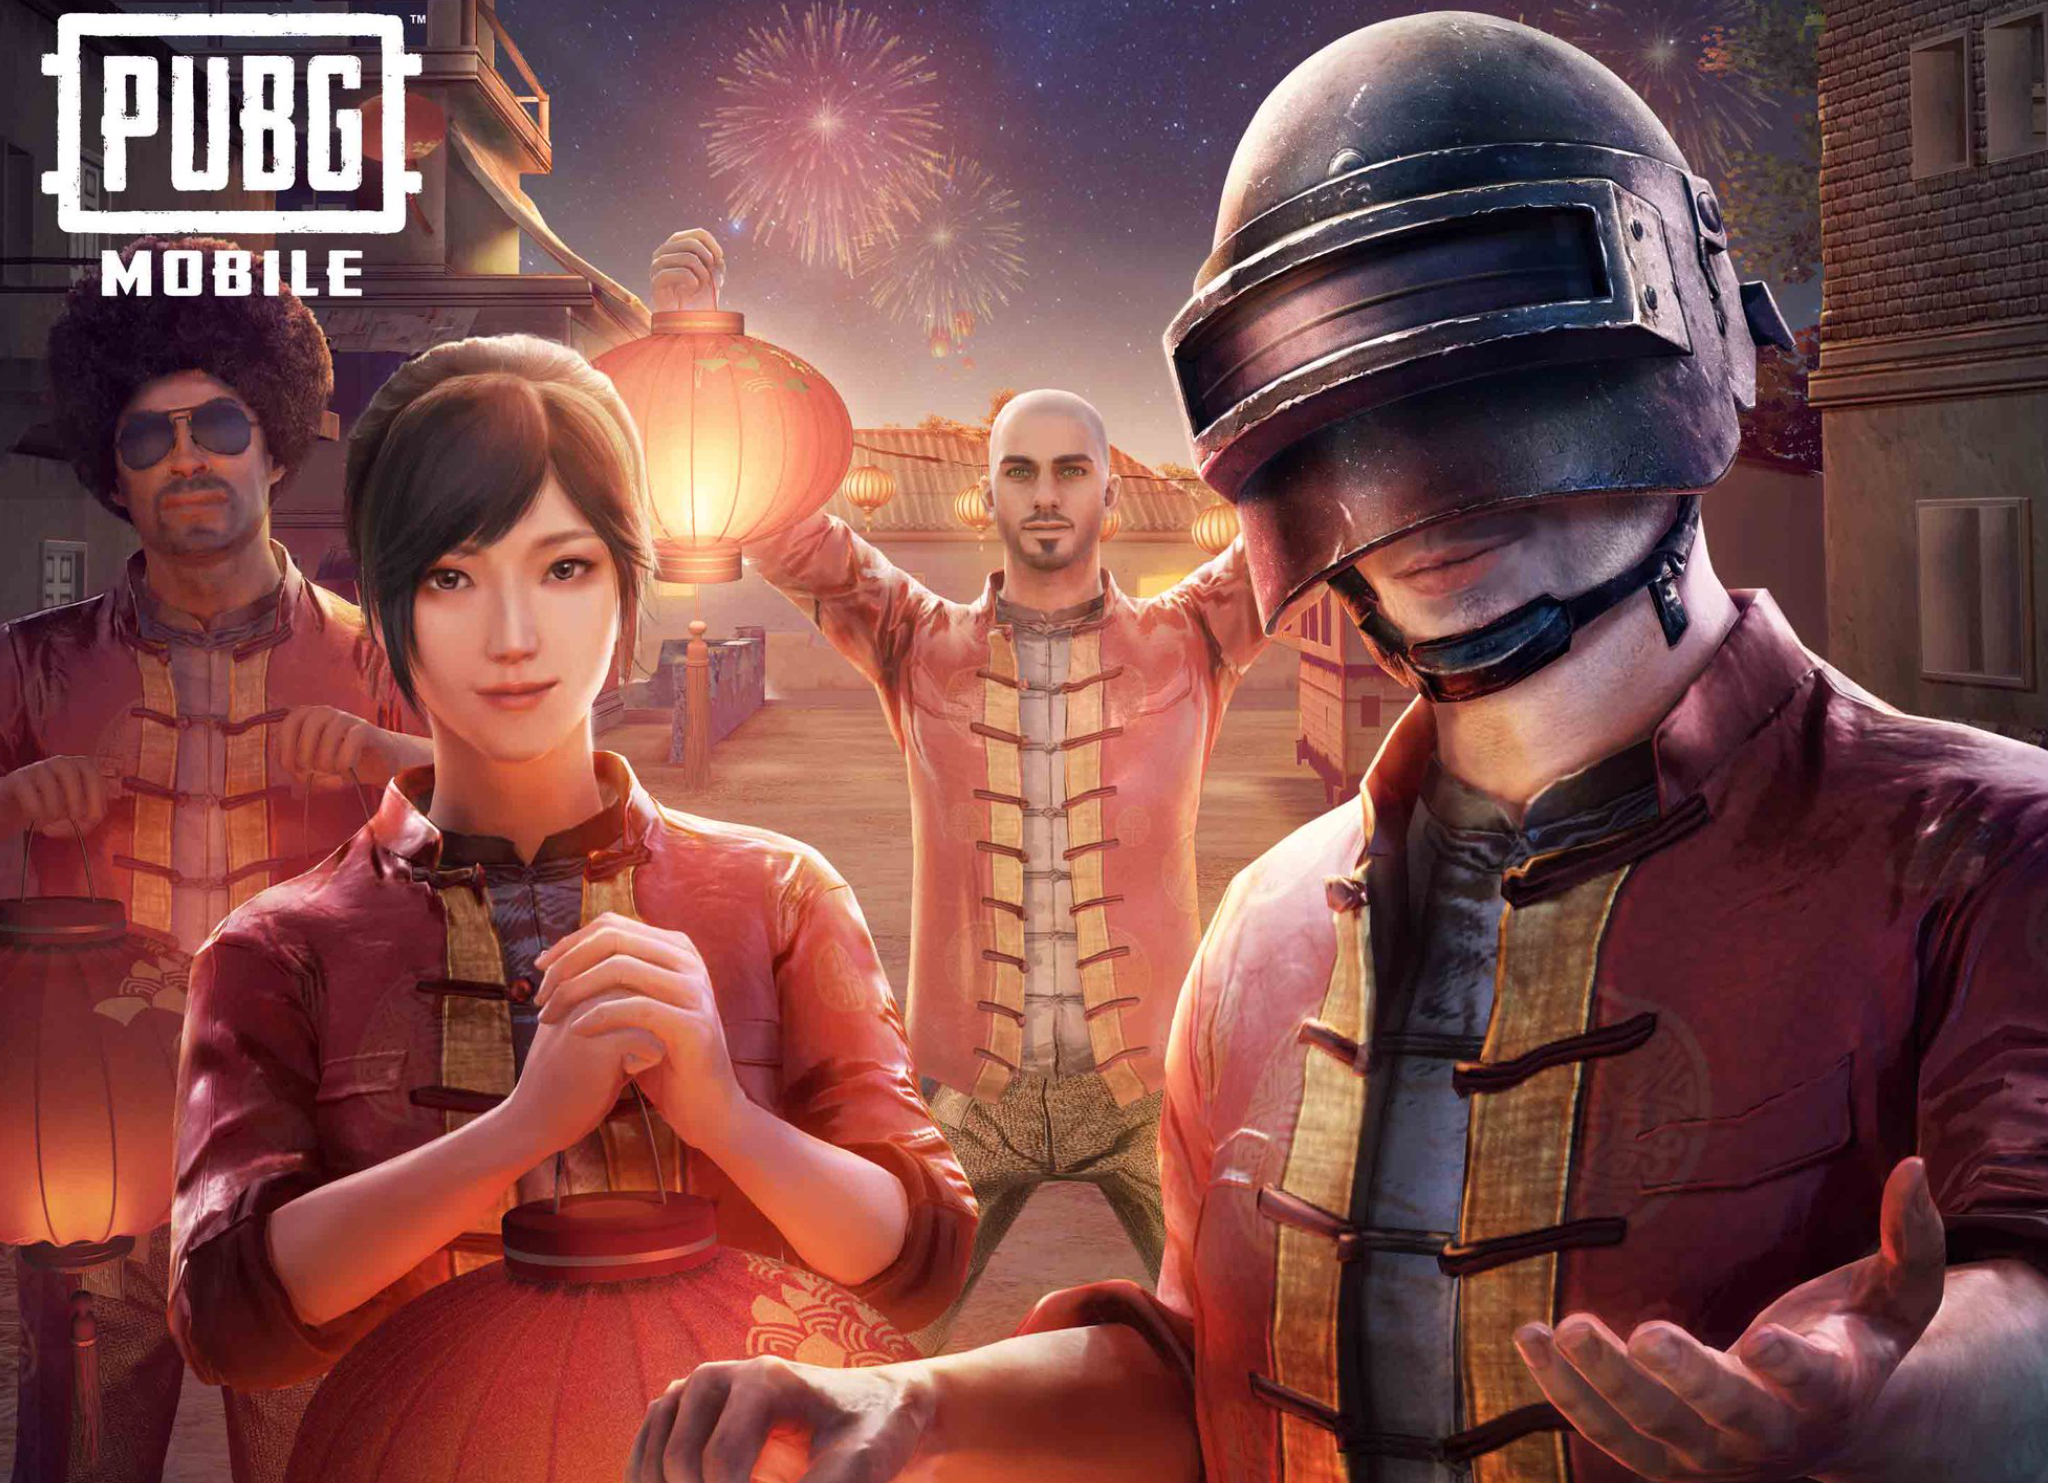 'PUBG Mobile' Spring Party Begins Tomorrow with Lantern Crafting, Exchanging, and More to Unlock a Permanent Outfit in Game - Touch Arcade